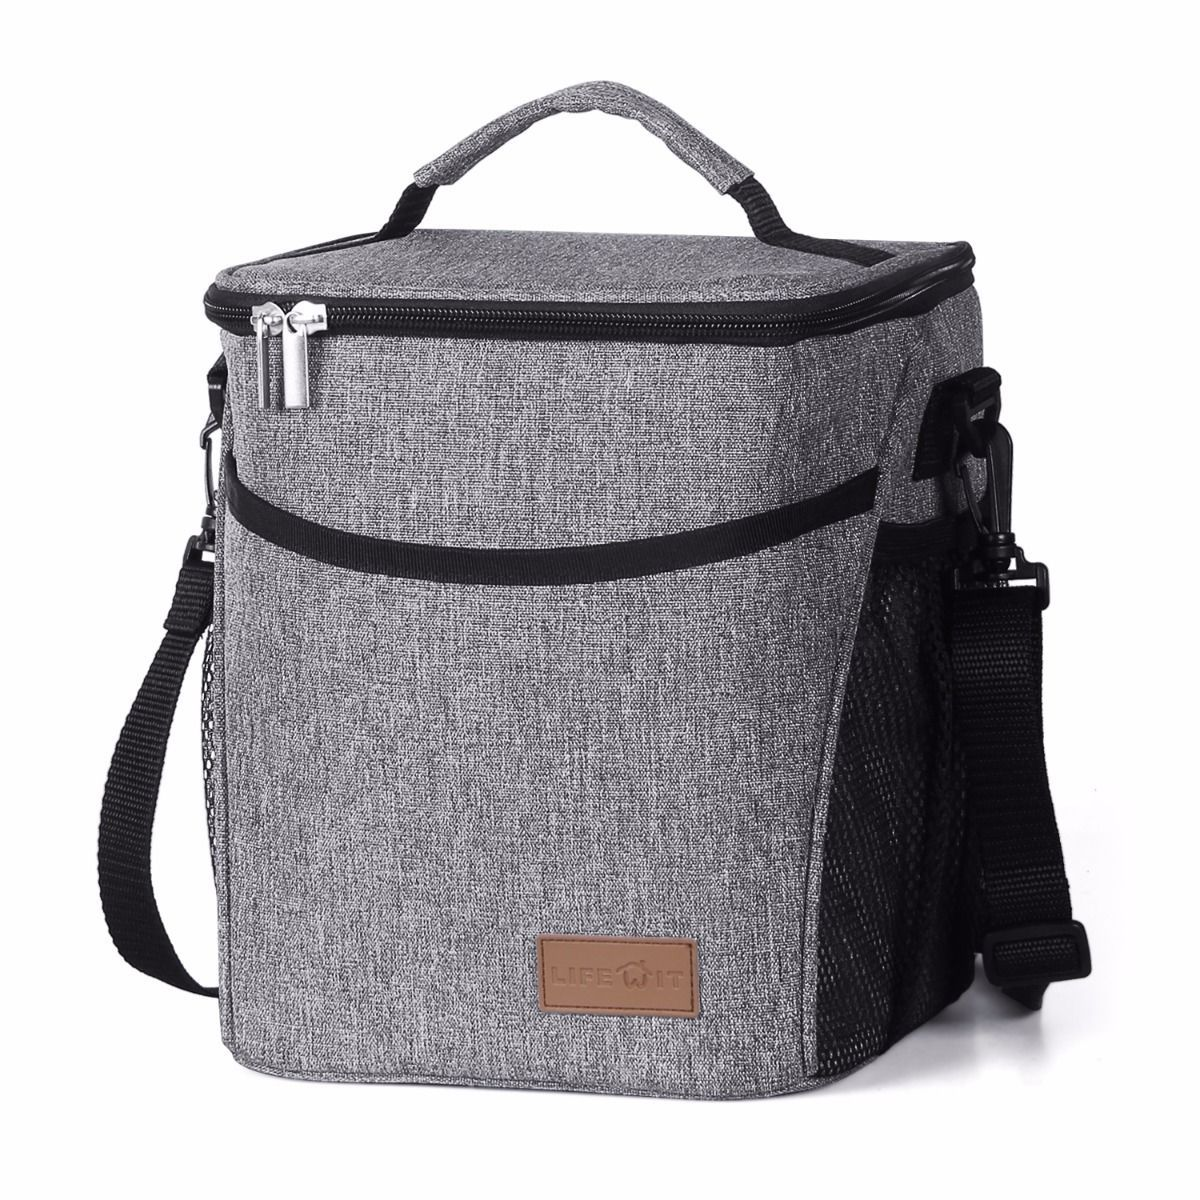 b1585152d917 Lifewit 9L Large Insulated Lunch Bag Waterproof Thermal Cooler Bag ...